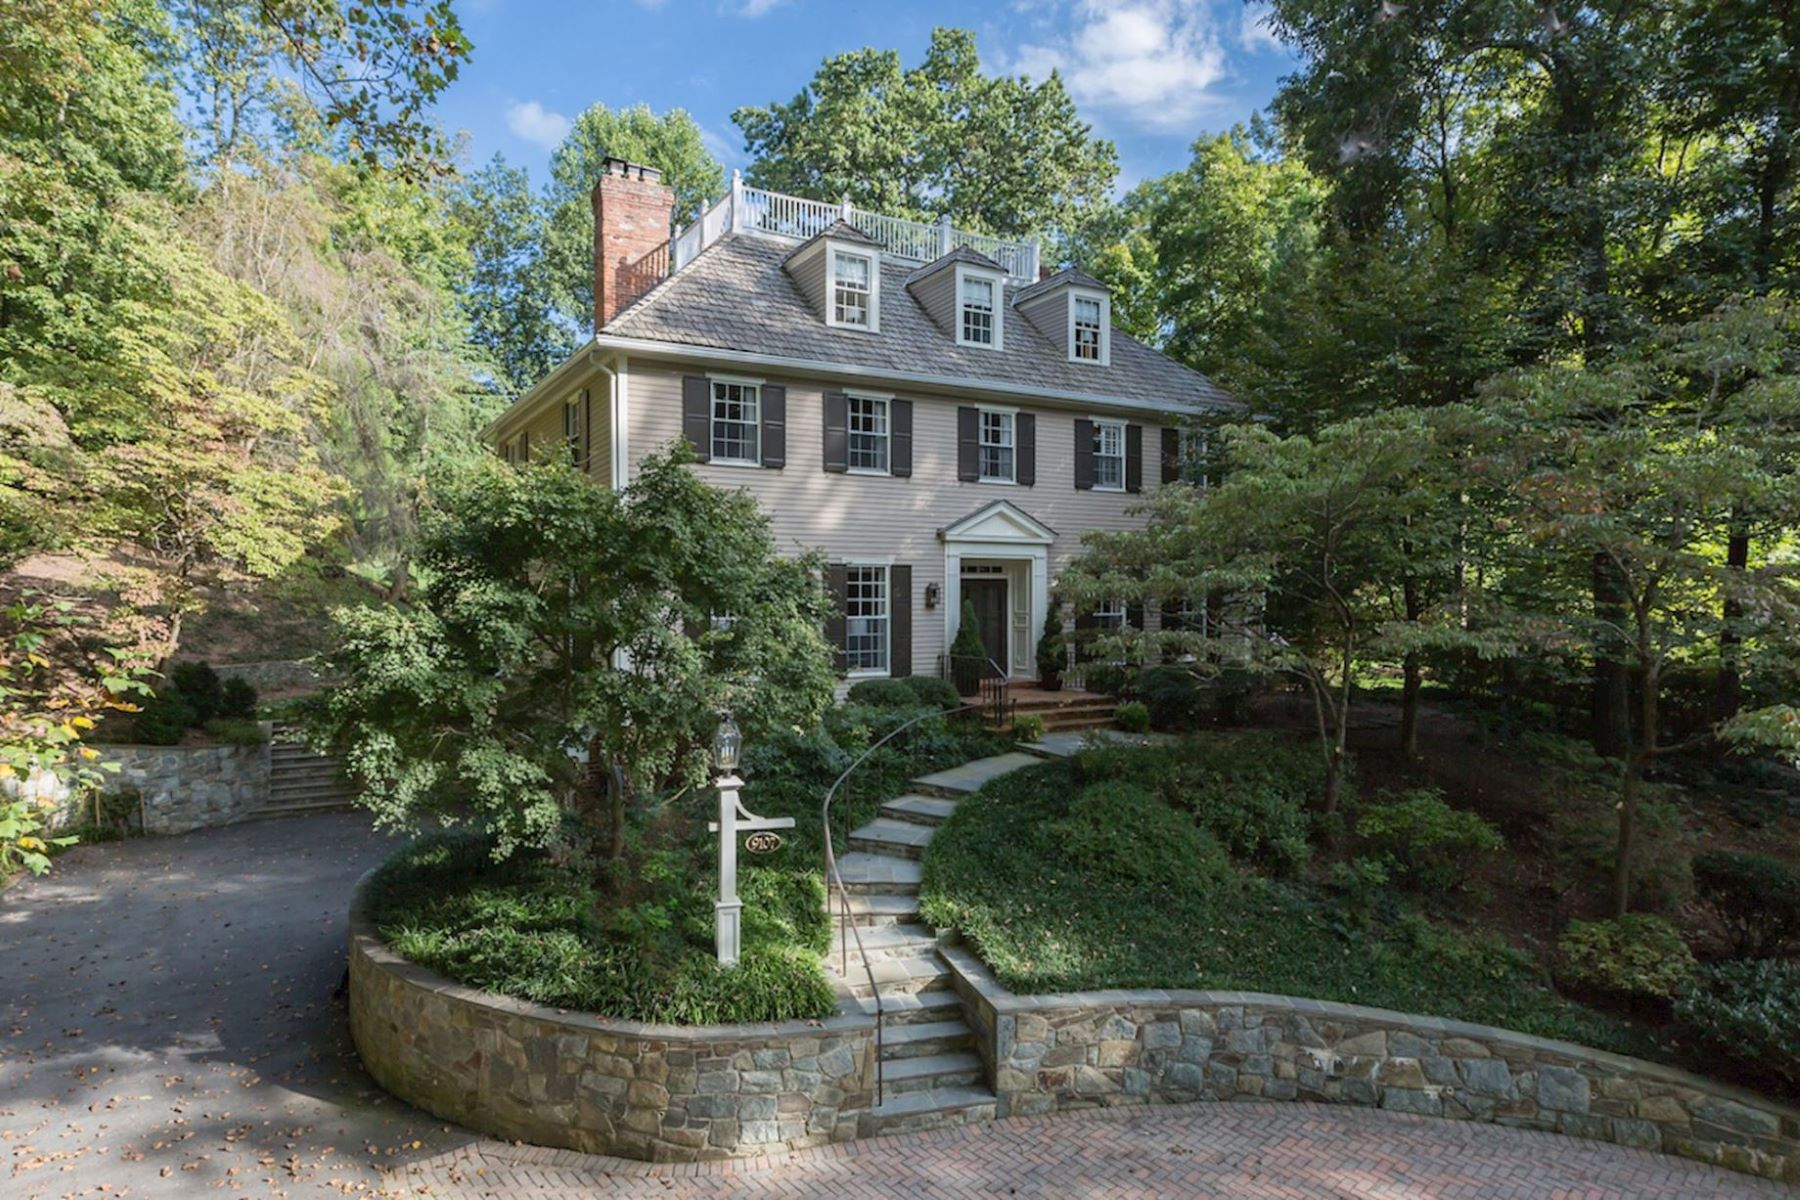 Single Family Home for Sale at 9107 North Branch Drive, Bethesda 9107 North Branch Dr Bethesda, Maryland 20817 United States